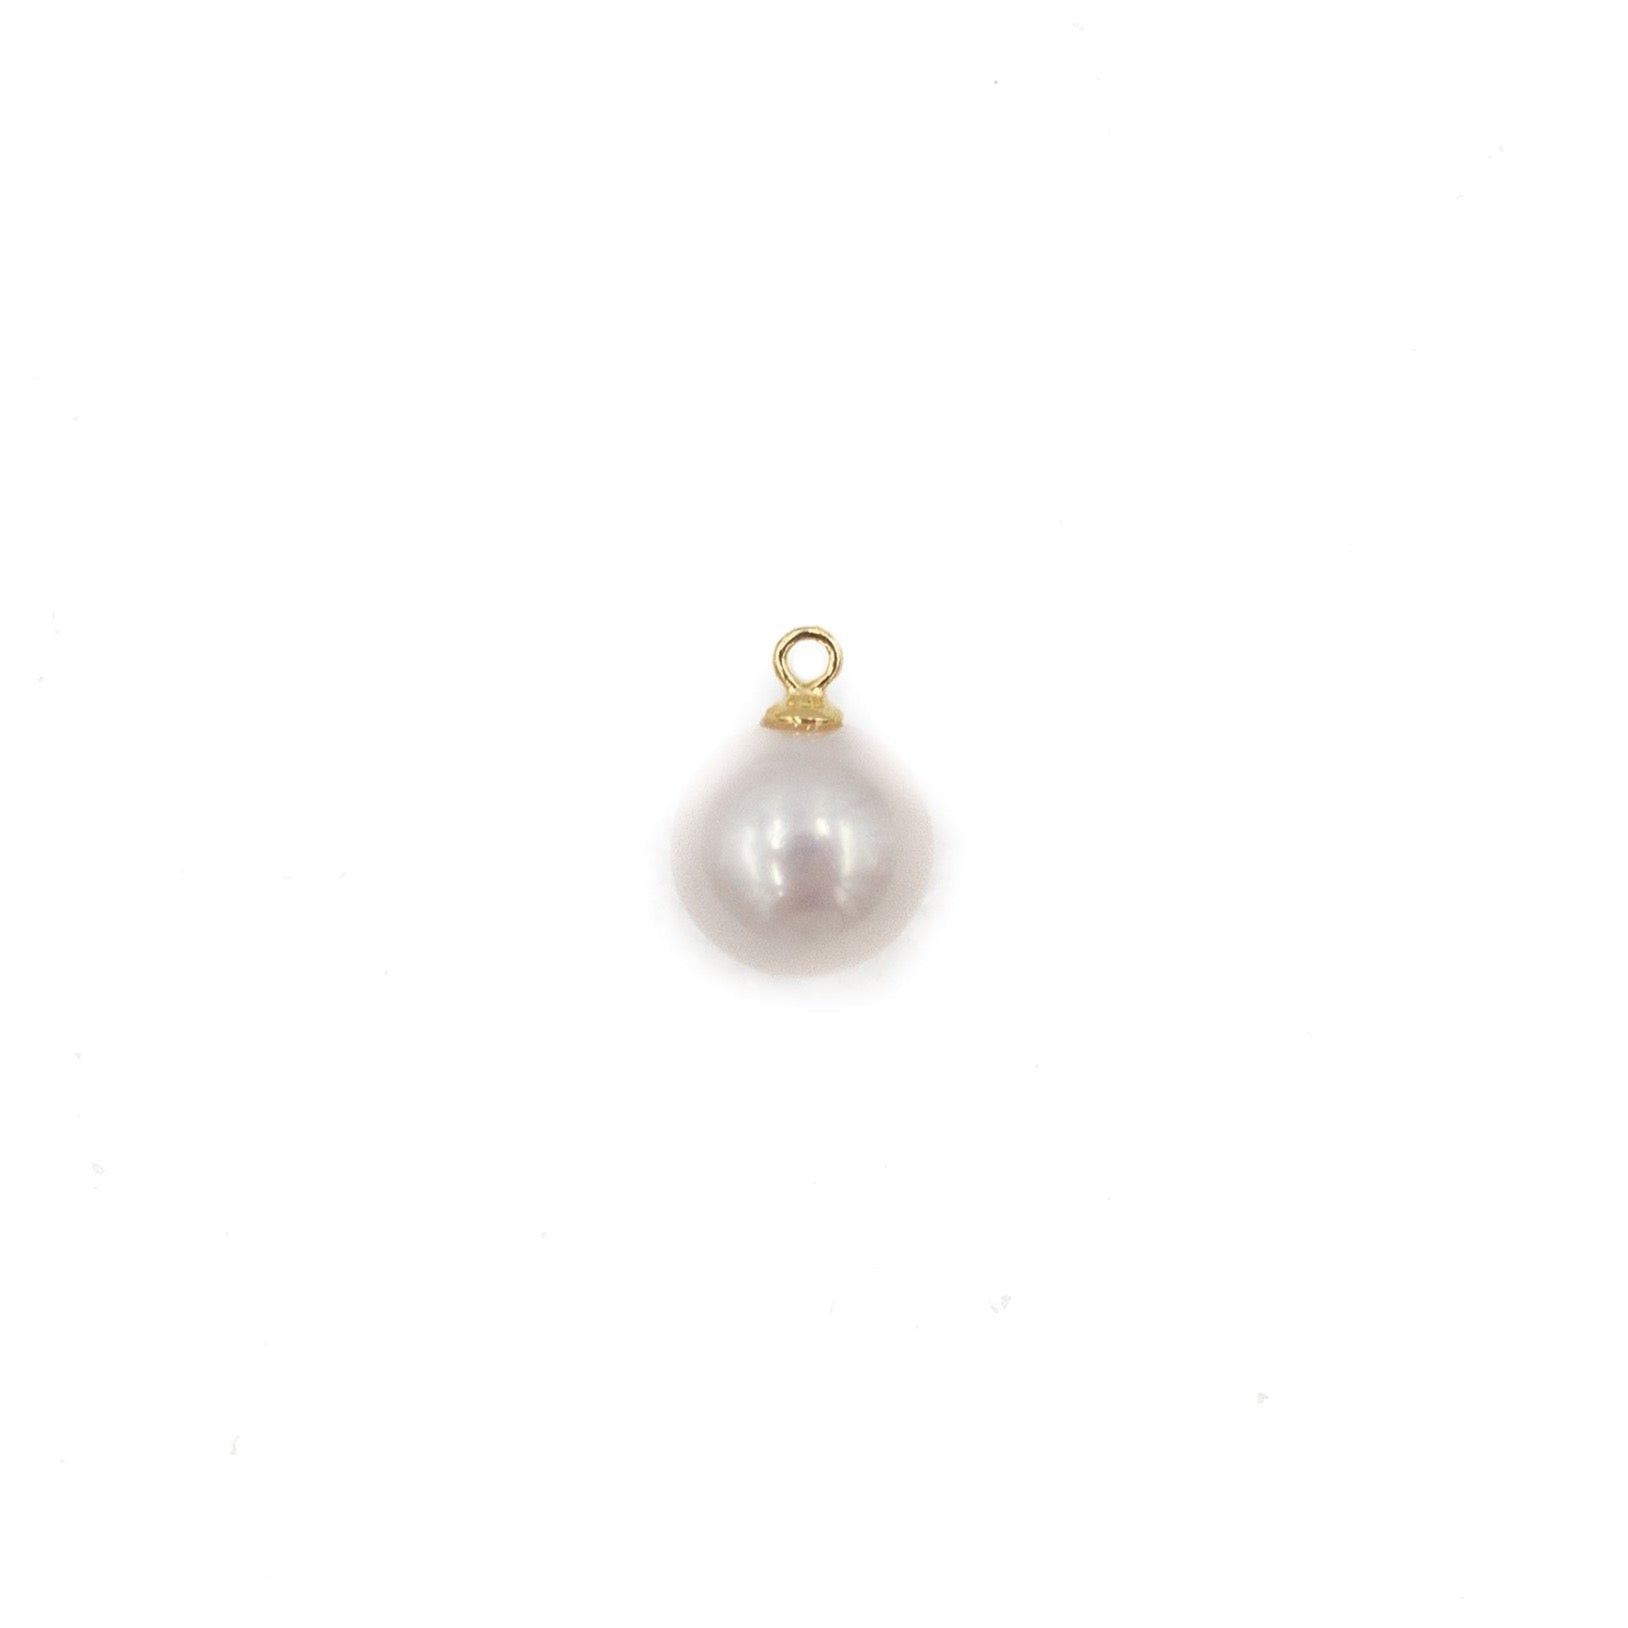 Alicia Necklace Charm, Freshwater Pearl, Gold